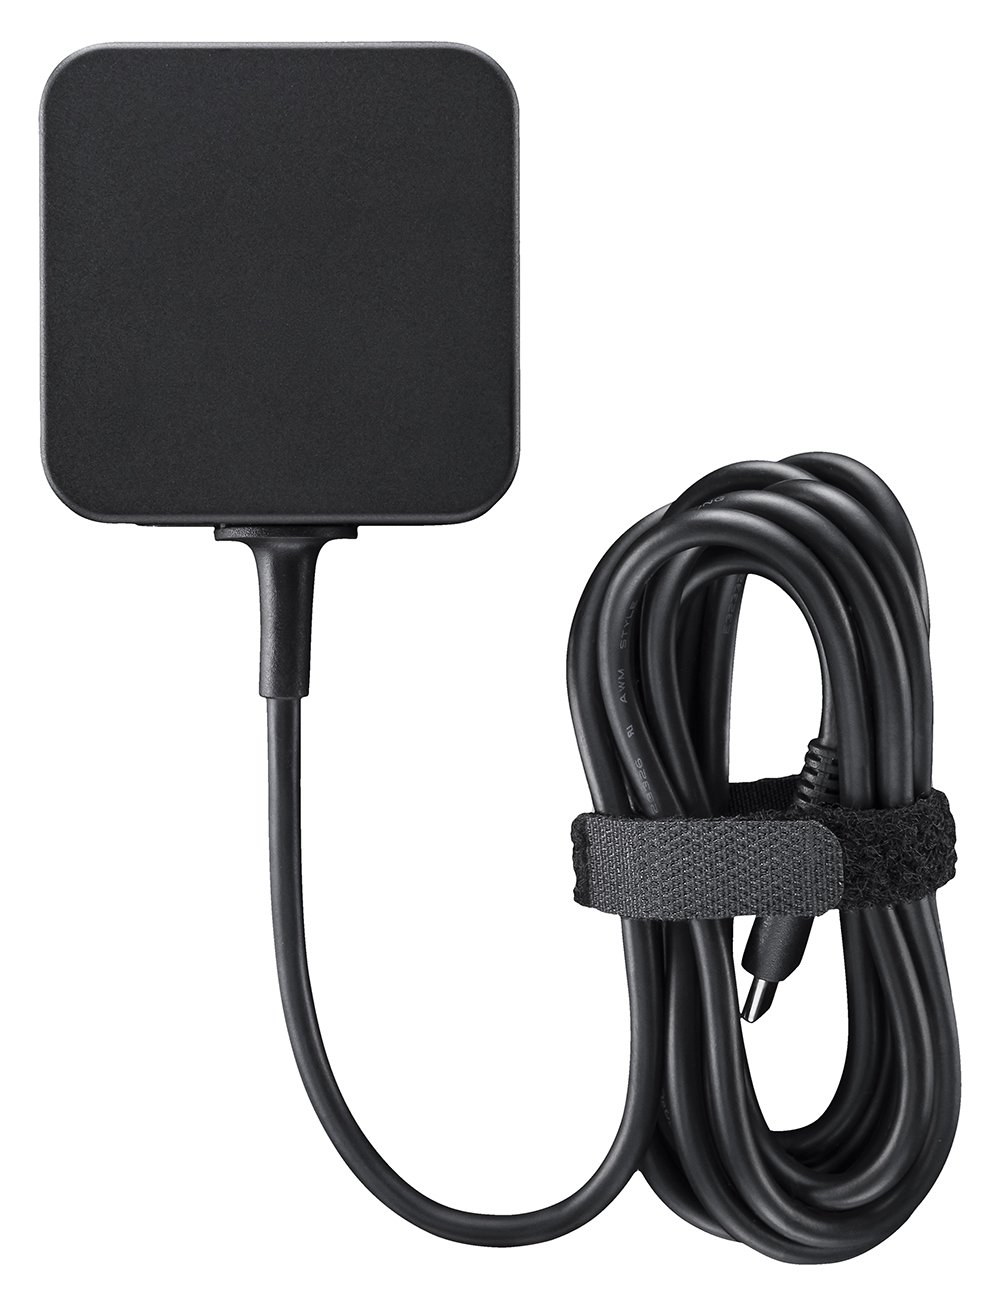 Wacom USB-C 45W Power Adapter - ACK4281401